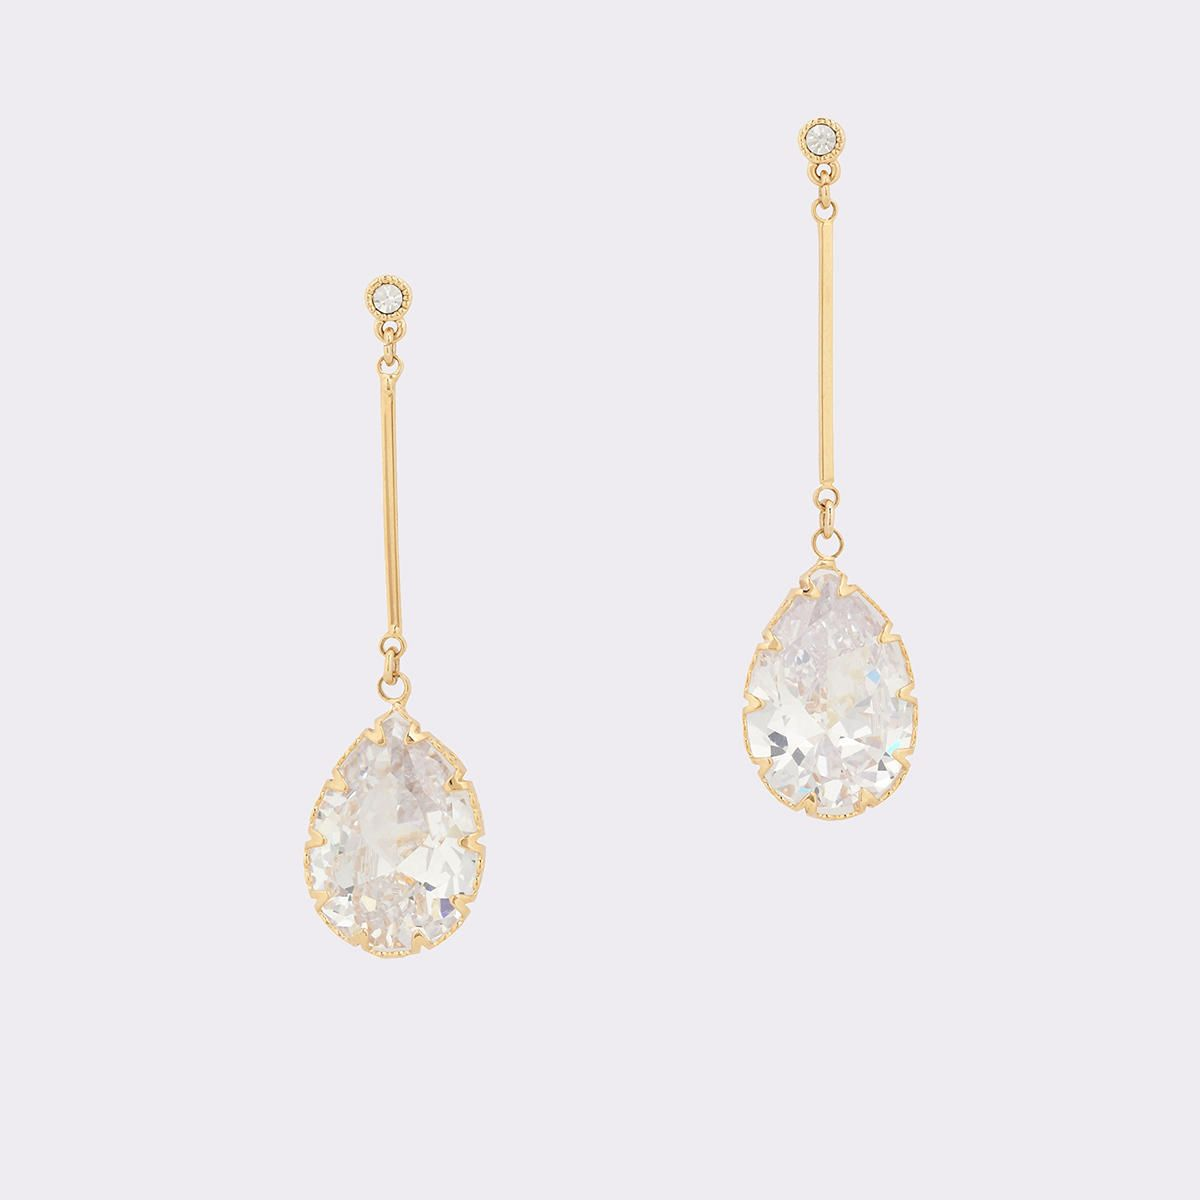 ff3fb029e Cares Sparkling and elegant these teardrop earrings will lend polish and  sophistication to any ensemble.